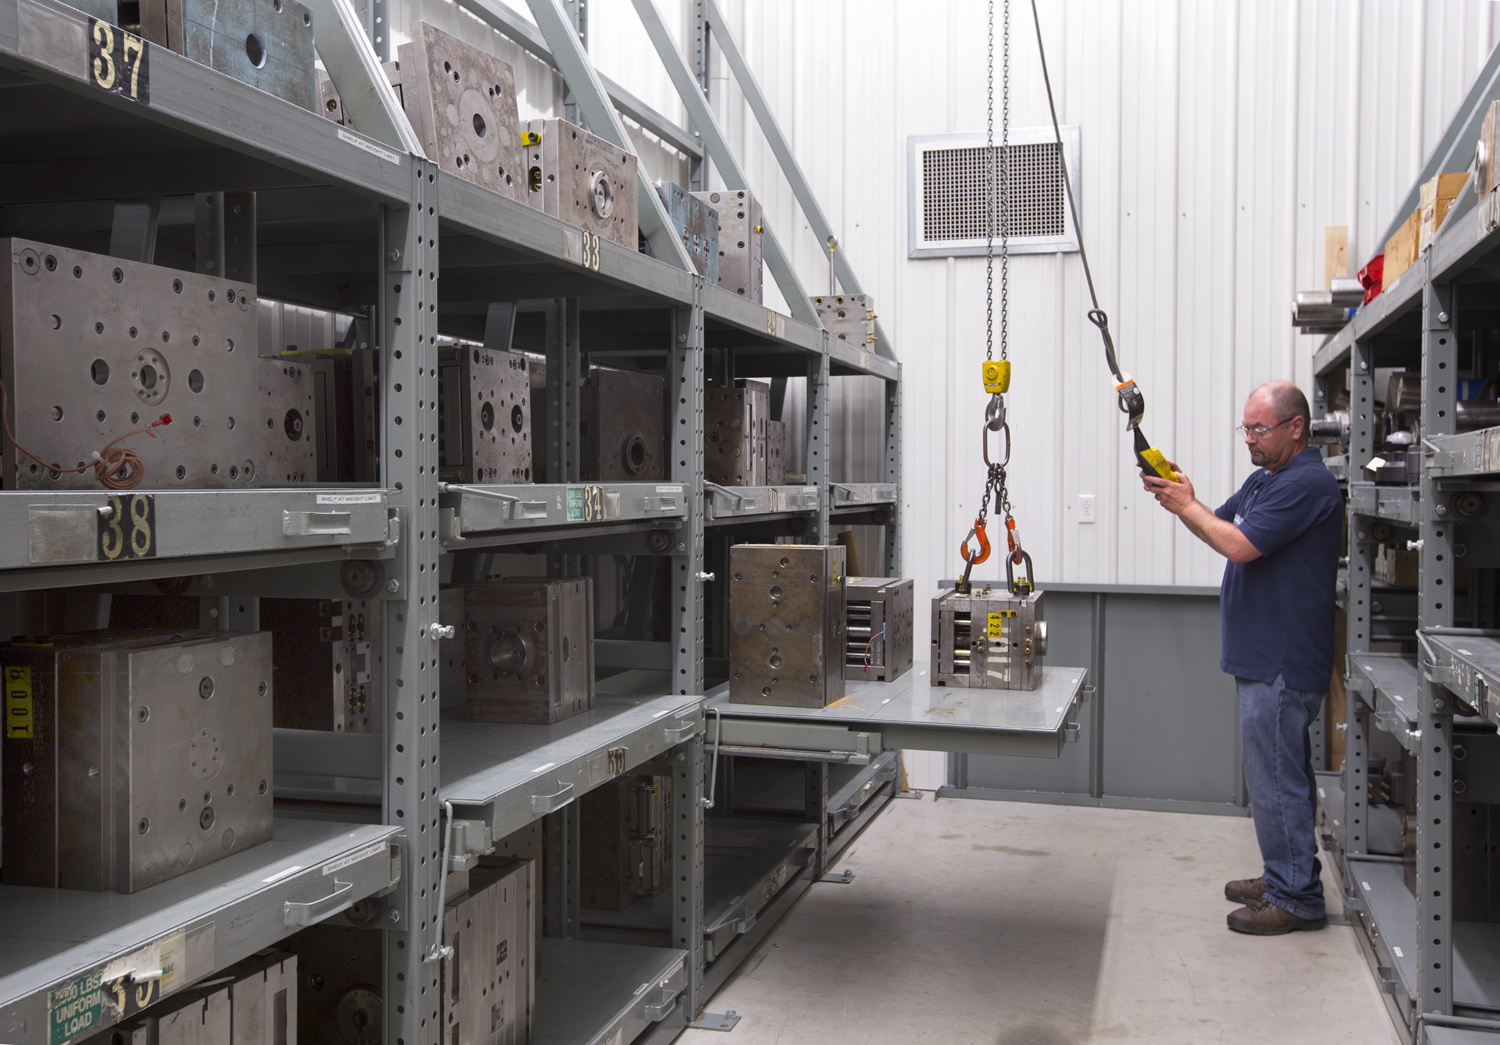 Roll-Out Shelving carries 3,000 pounds with 100% Extension